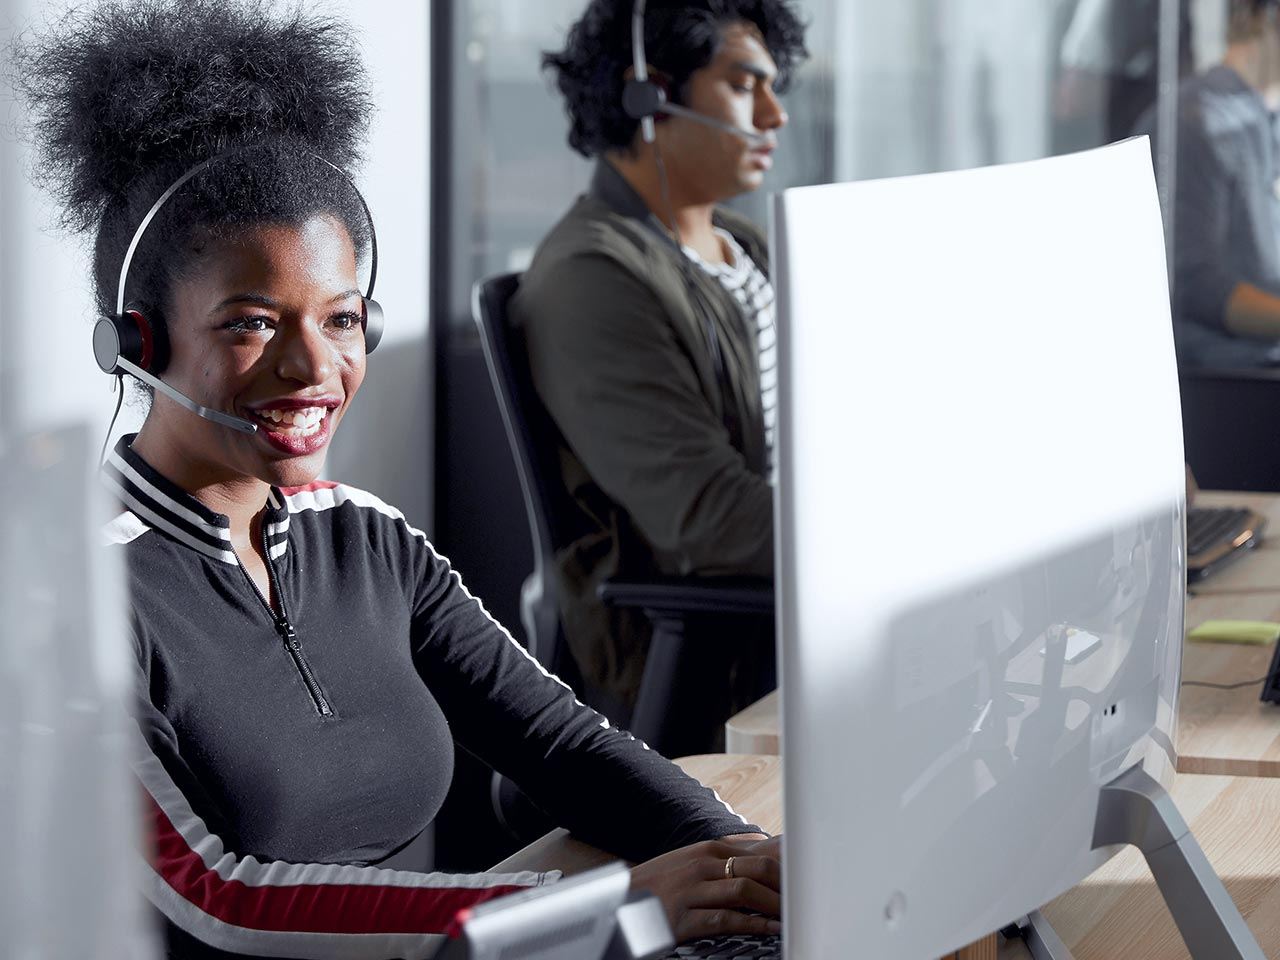 Avaya | Worldwide Leader in Contact Center, Unified Communications